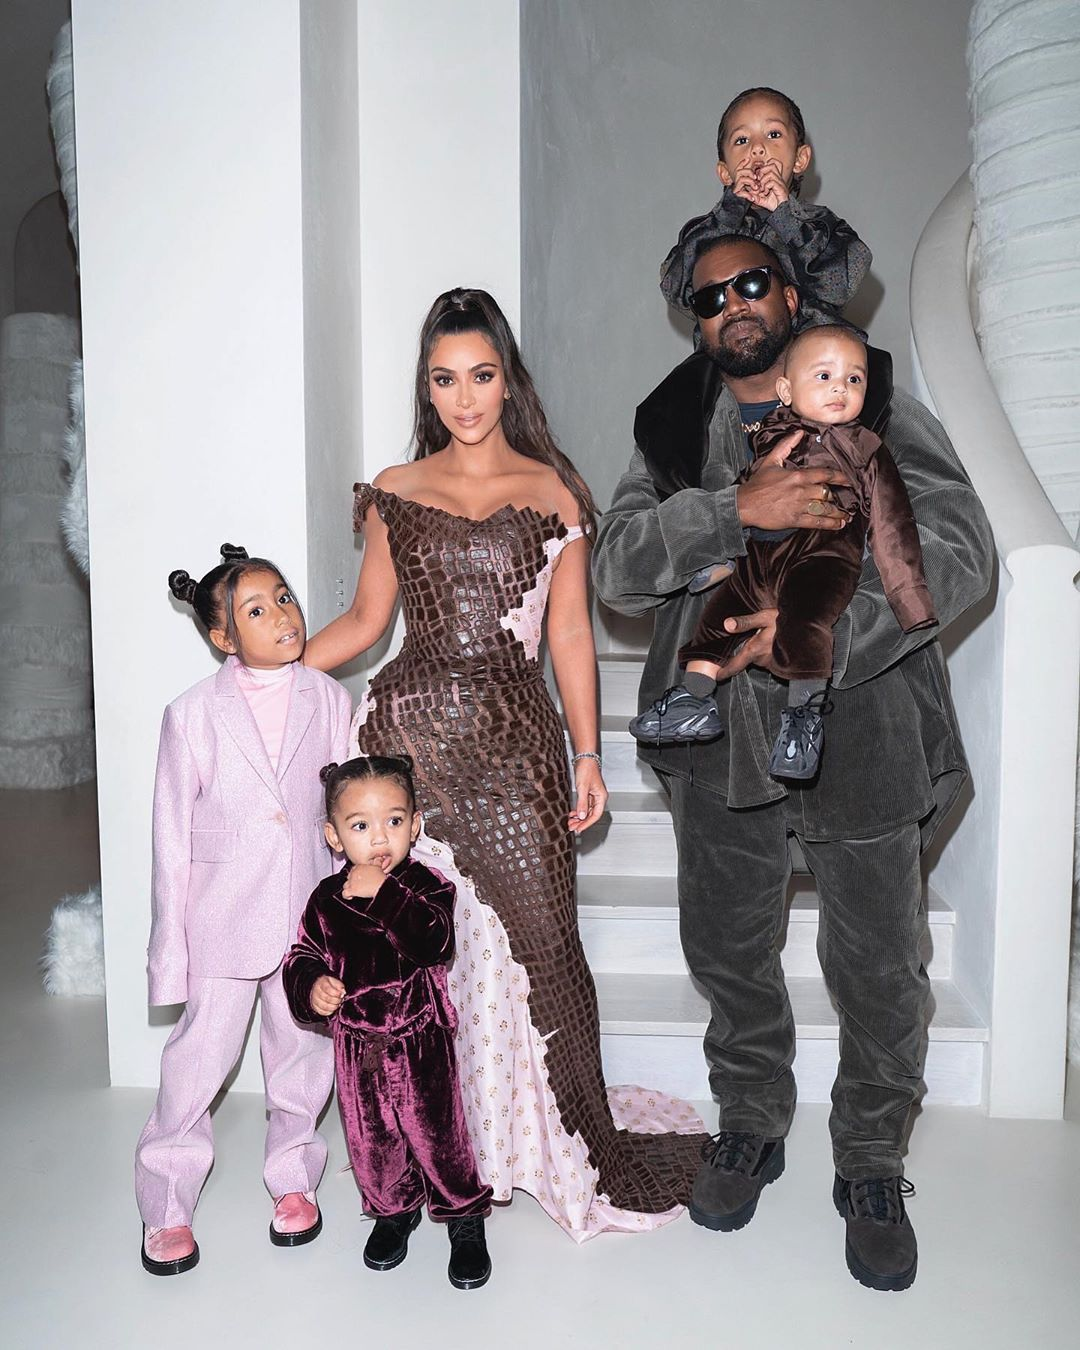 The rapper will only return to LA to visit his children and for work purposes